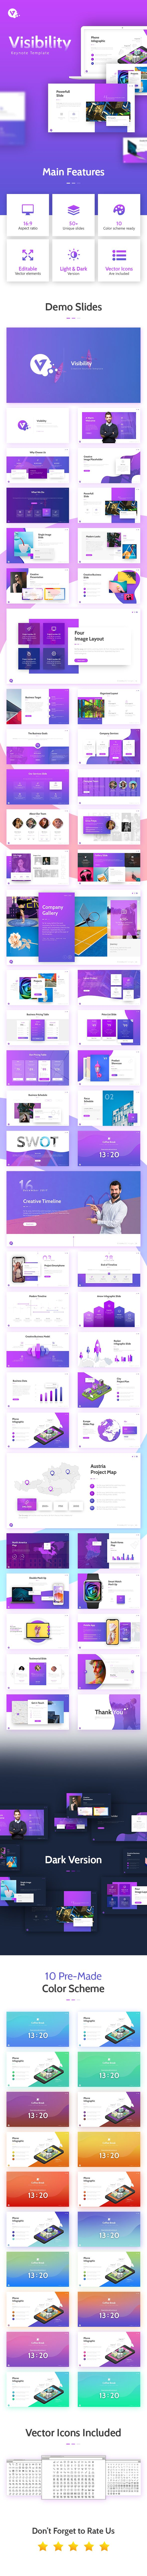 Visibility Multipurpose Creative Keynote Presentation Template Business Keynote presentation template